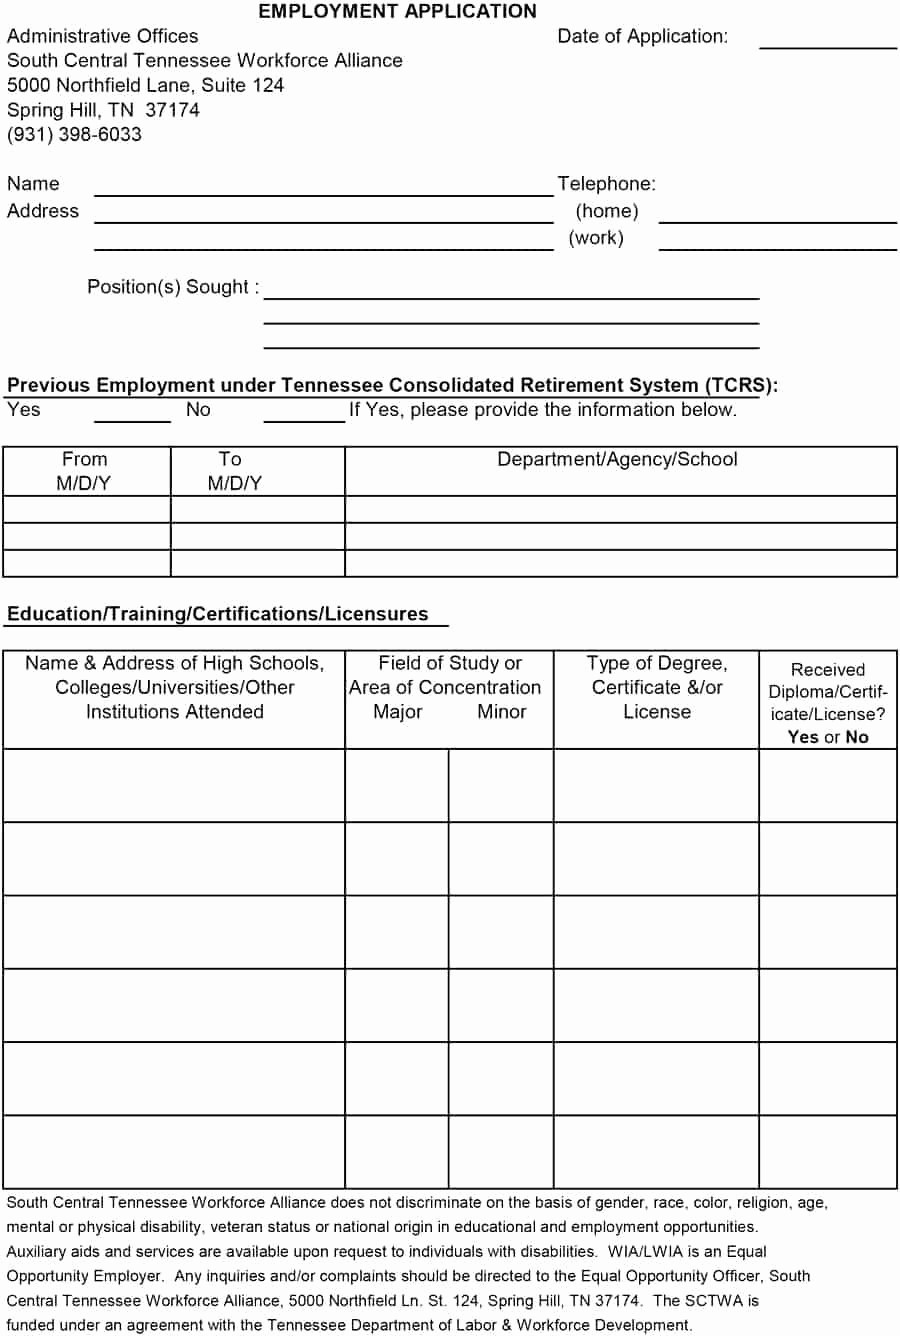 Employment Application forms Free Download Fresh Employment Application form Free – Omtimes